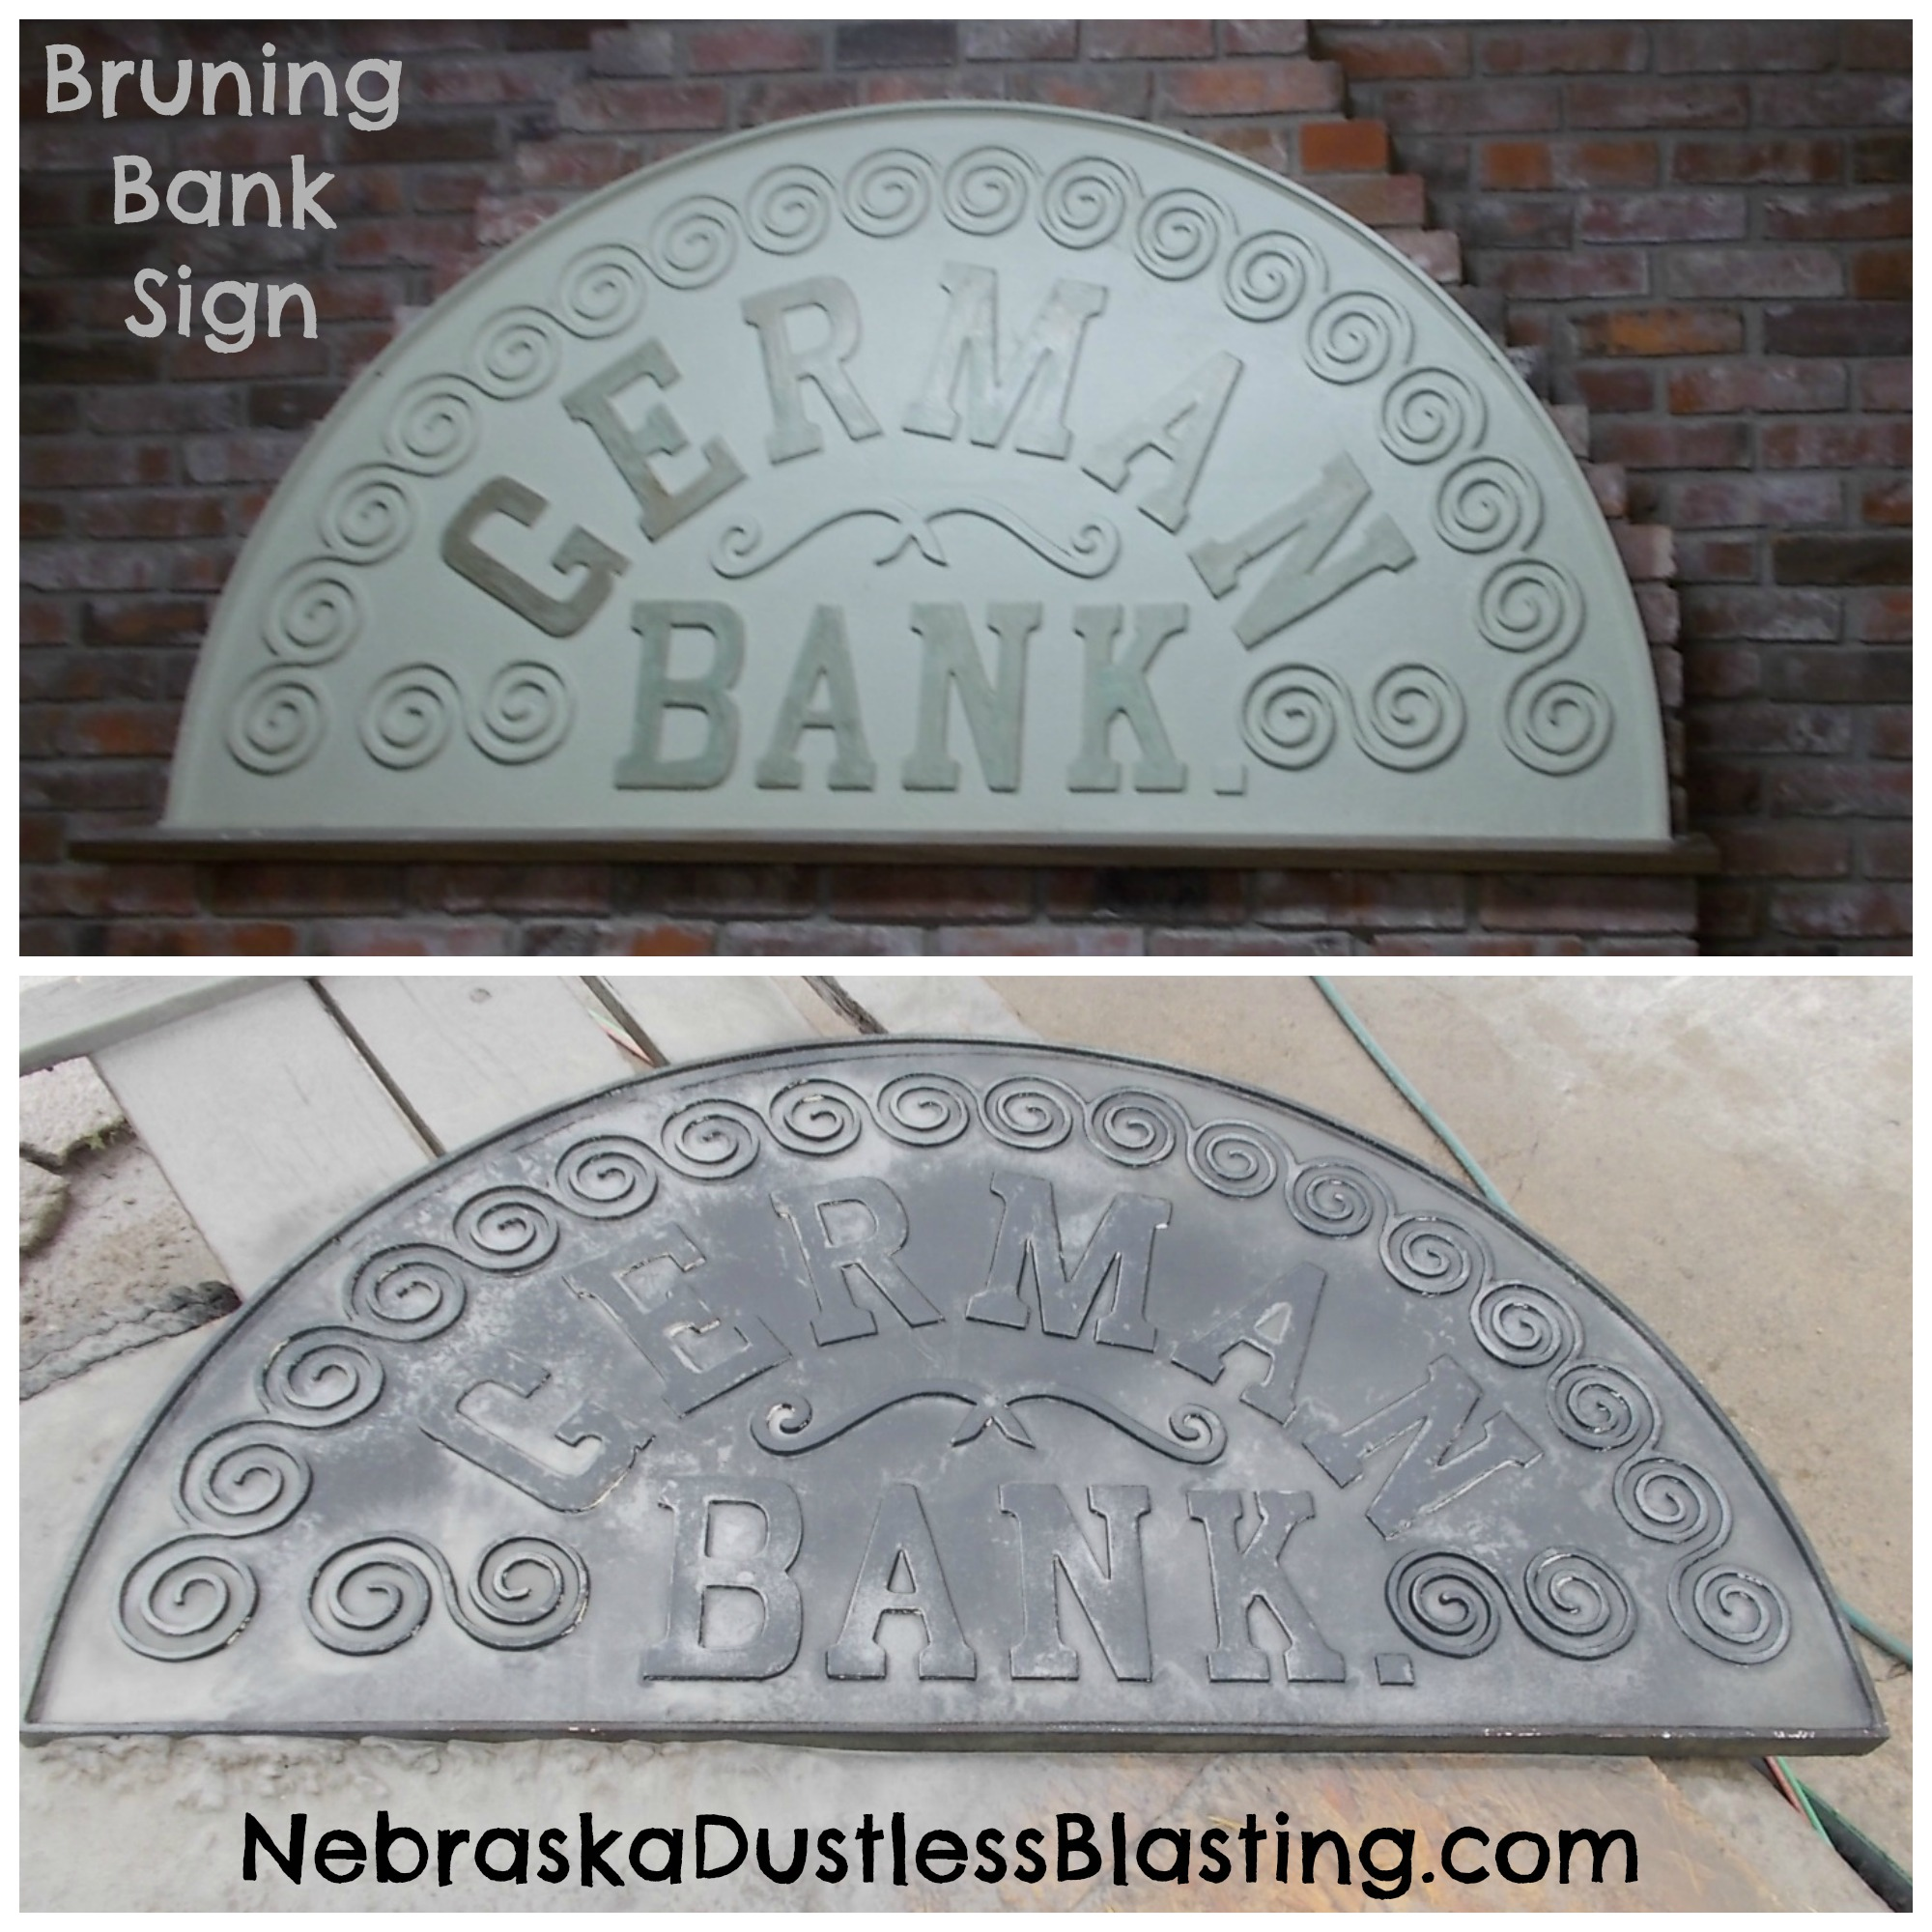 http://nebraskadustlessblasting.com/wp-content/uploads/2015/06/Bruning-Bank-Before-and-After-Collage.jpg